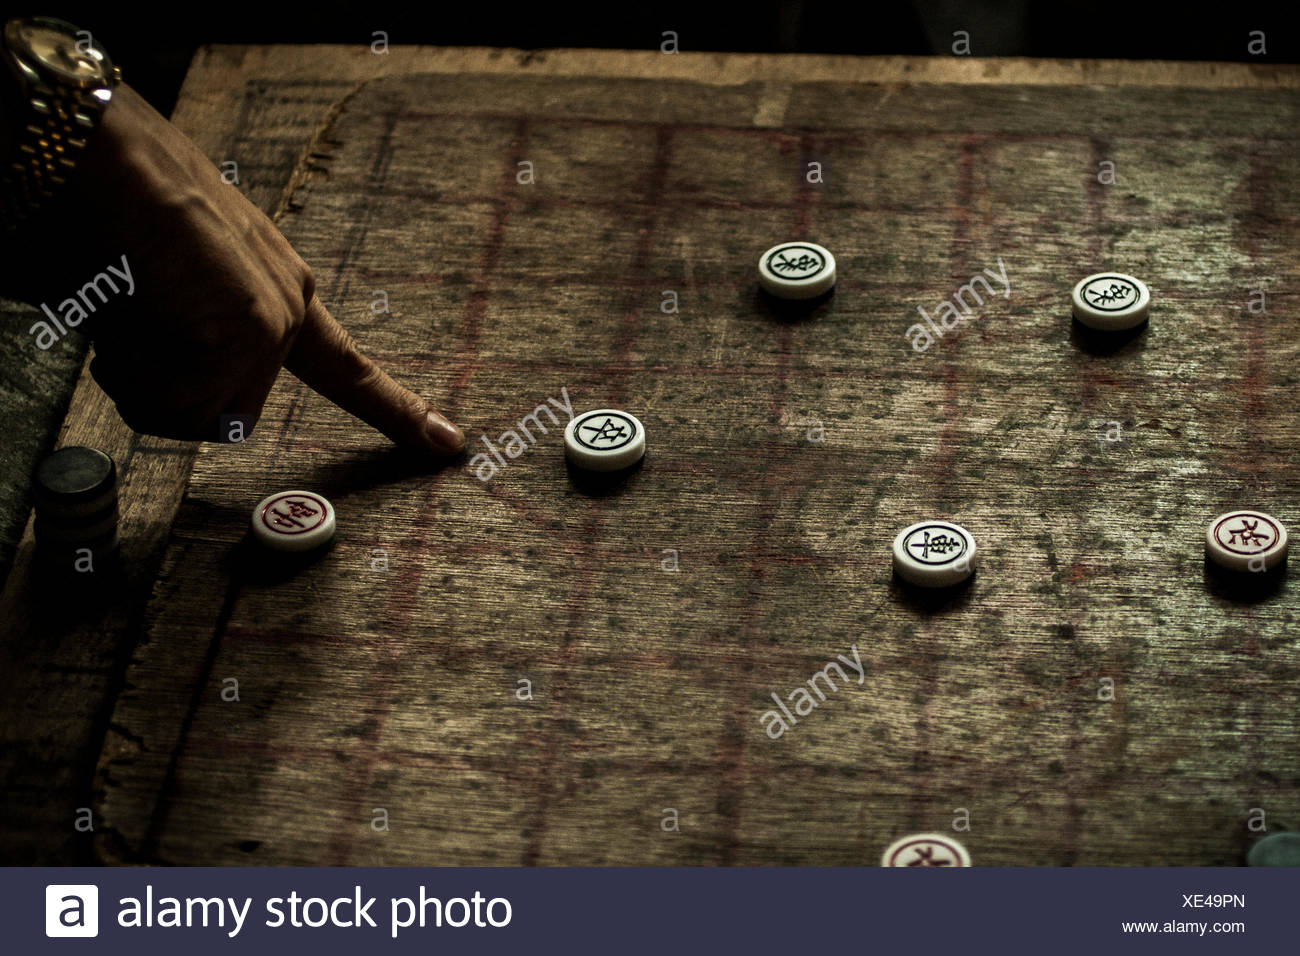 A man points to a strategic place on a Chinese chess board. - Stock Image